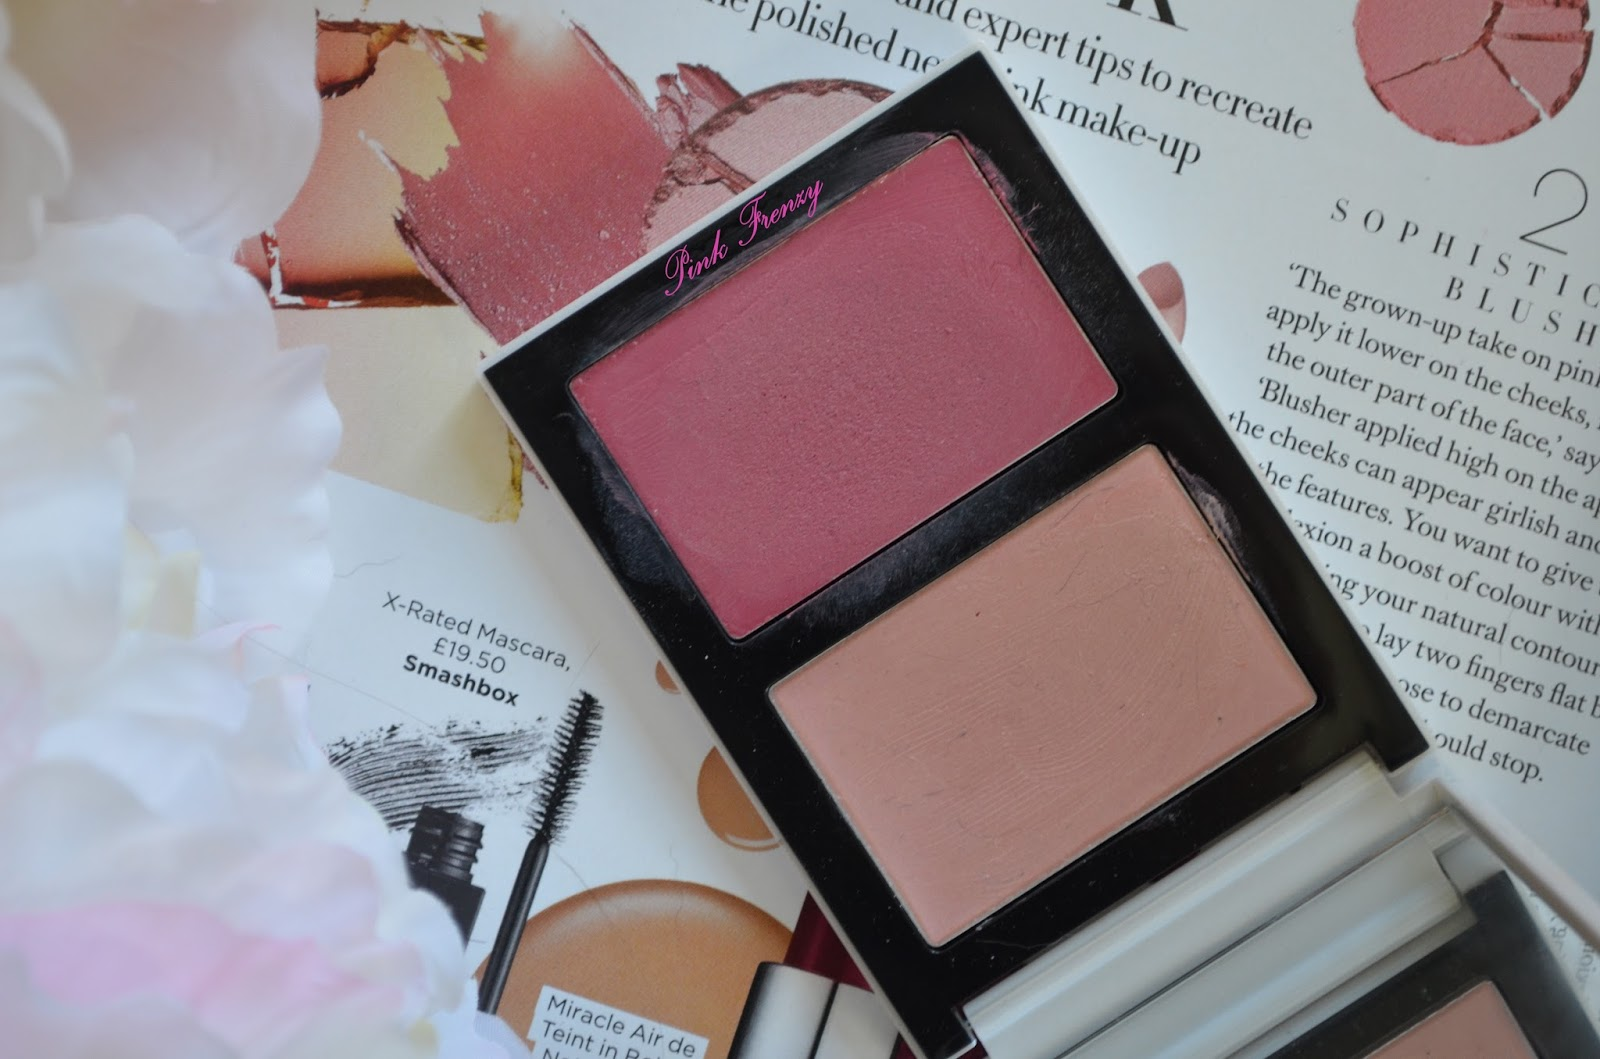 Review Bobbi Brown Cheek Glow Palette Pink Frenzy Bloglovin Illuminating Limited Edition The Blush Is Classic Shade And Pigmented It Blends Out To Perfect Of I Just Adore Wearing With A Simple Day Look